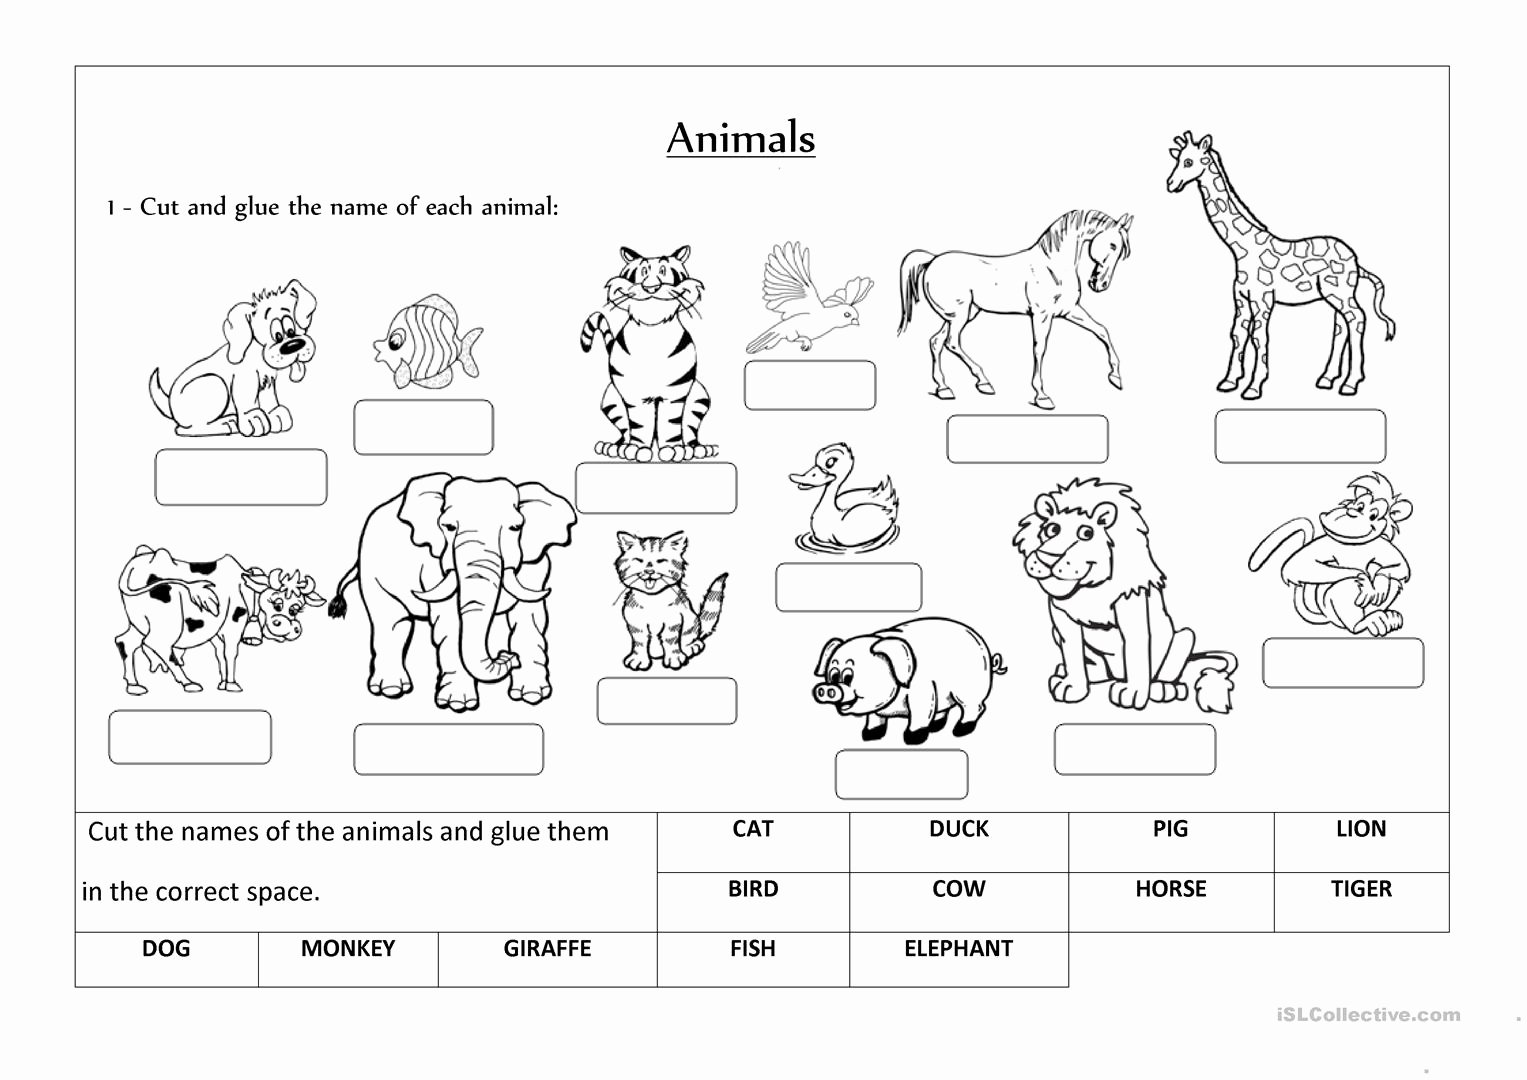 Animal Classification Worksheet Pdf Unique Animals Label and Classify Worksheet Free Esl Printable